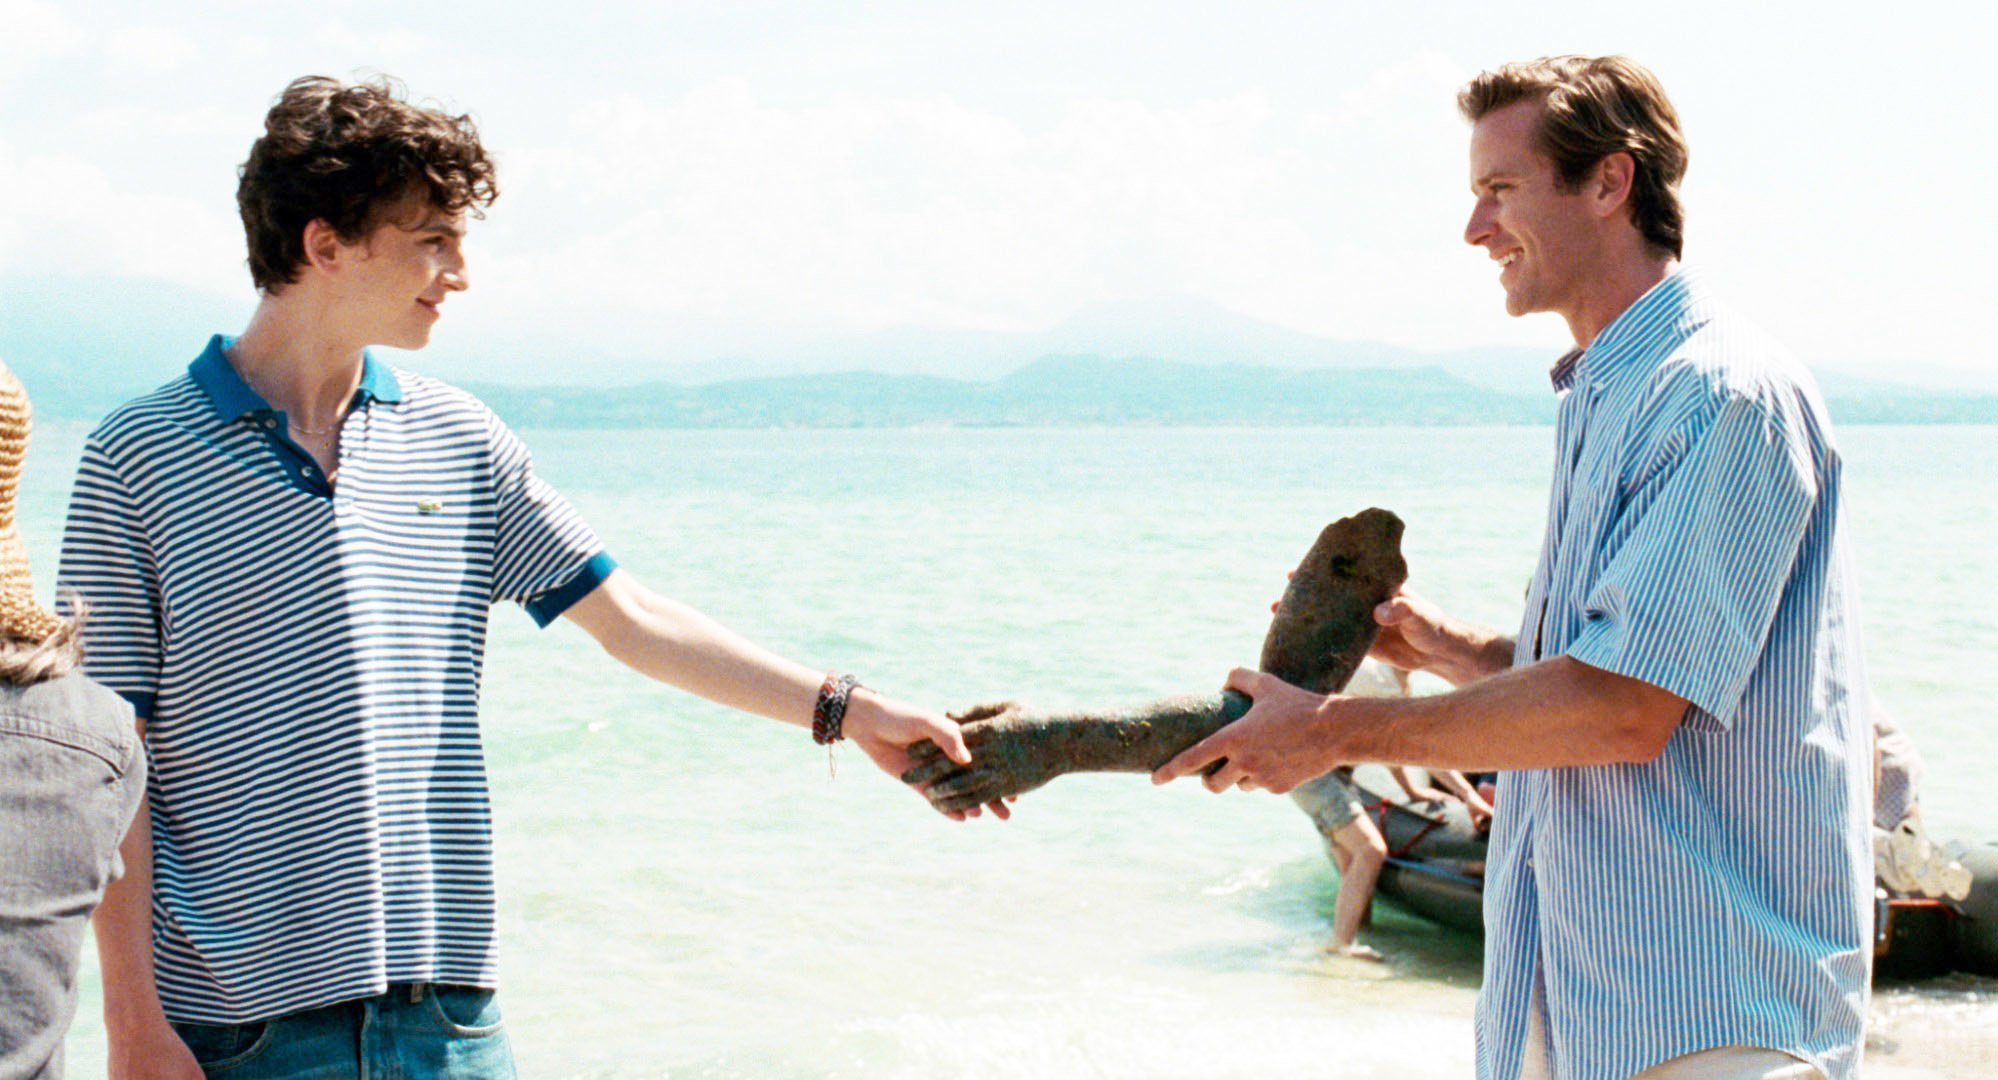 Elio and Oliver pretending to shake hands with a rock hand